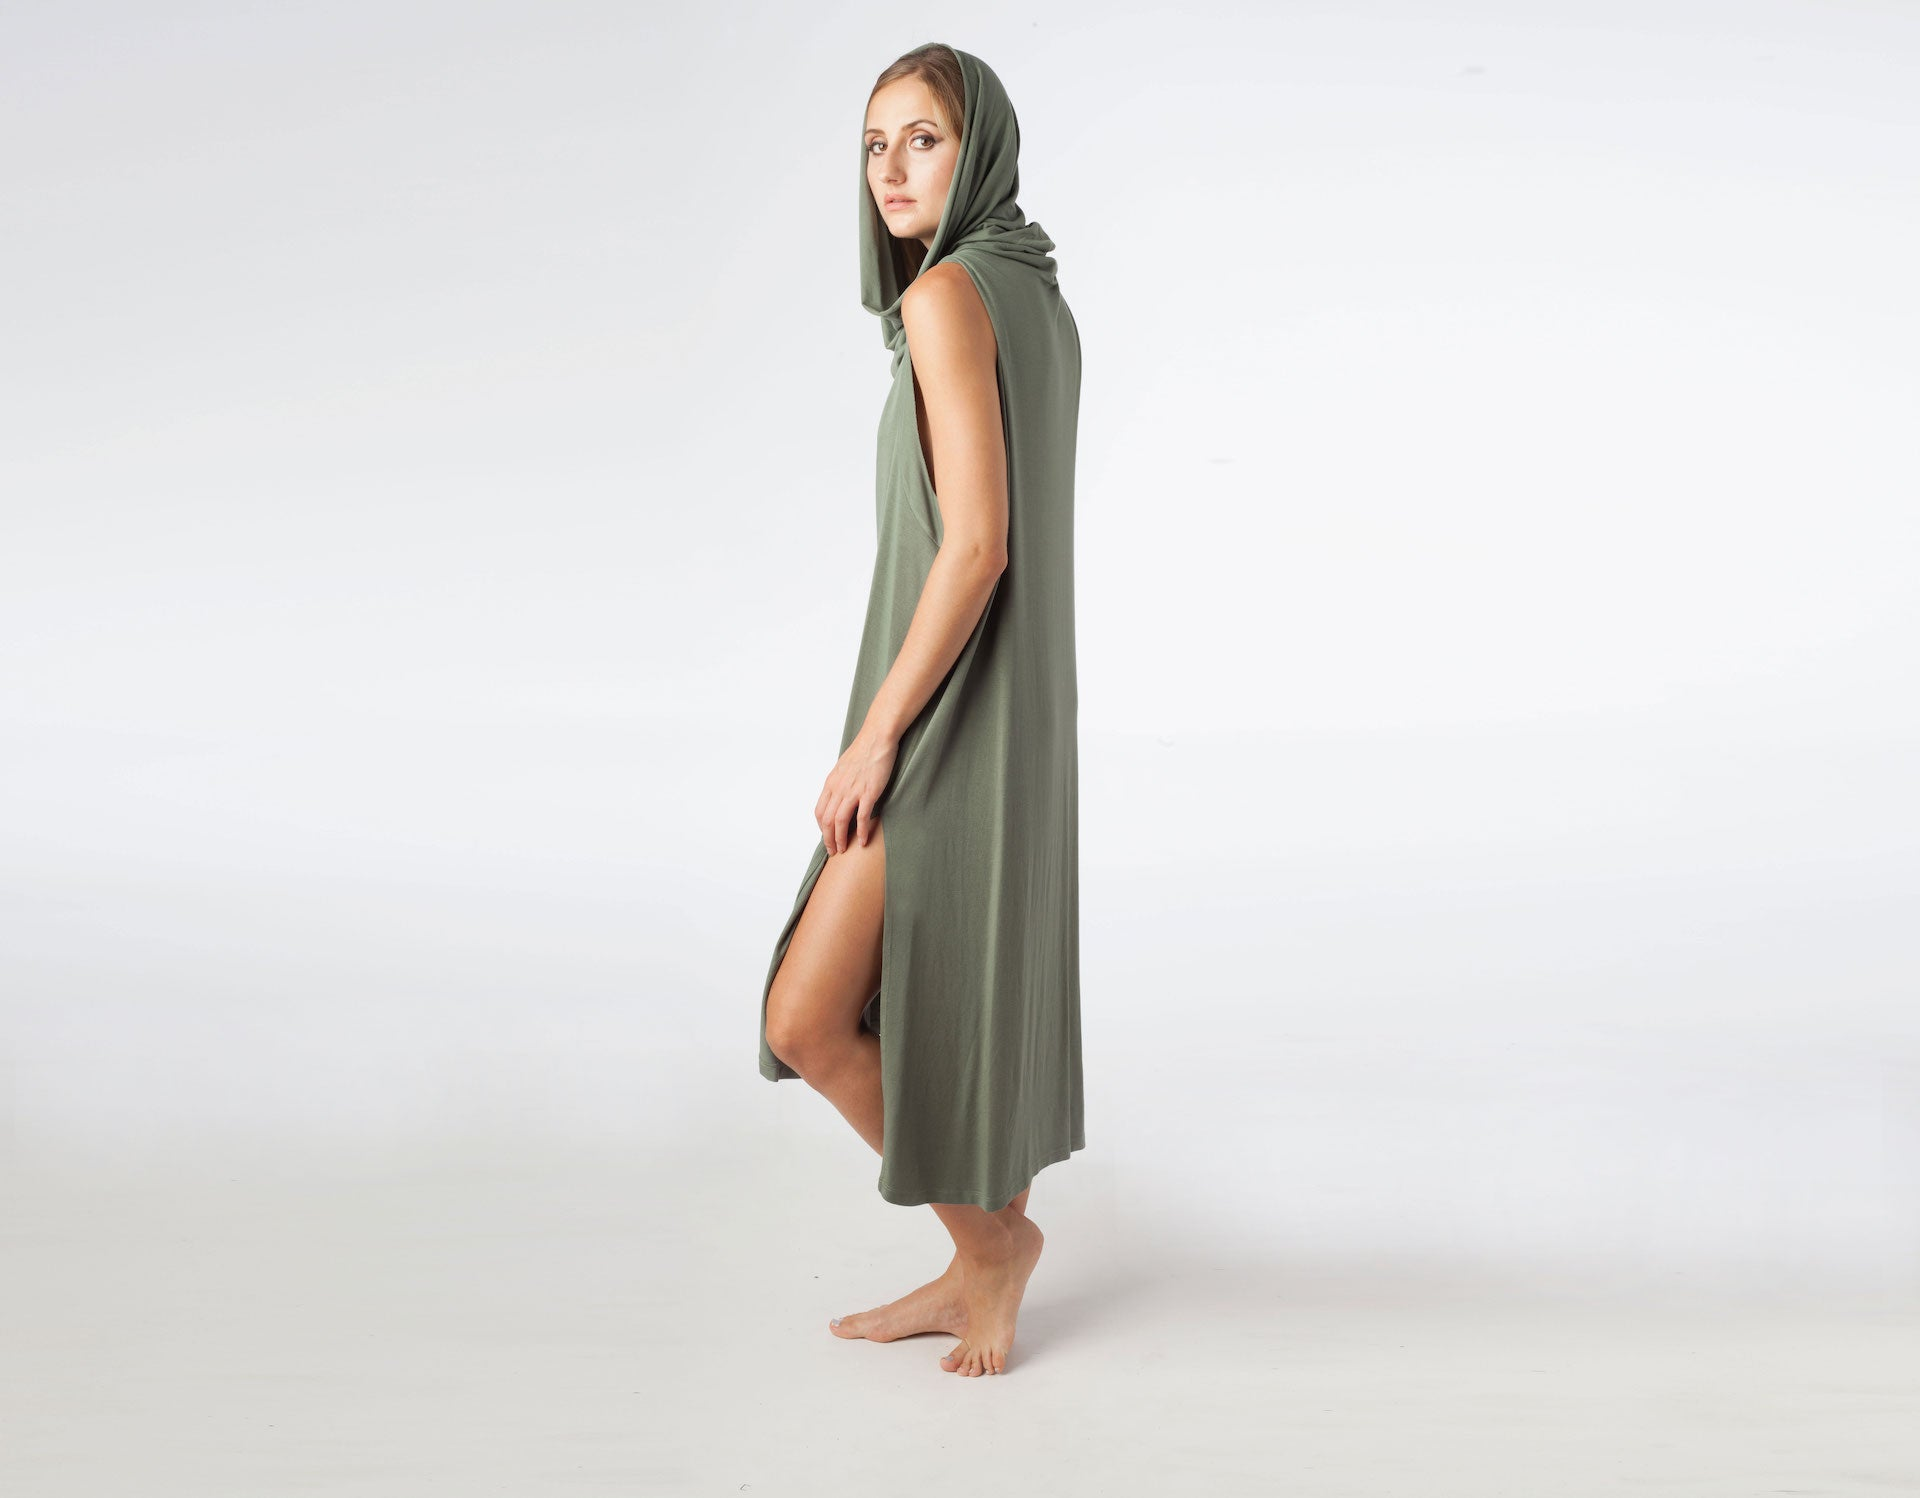 Echape Long Top/Dress - Olive Green